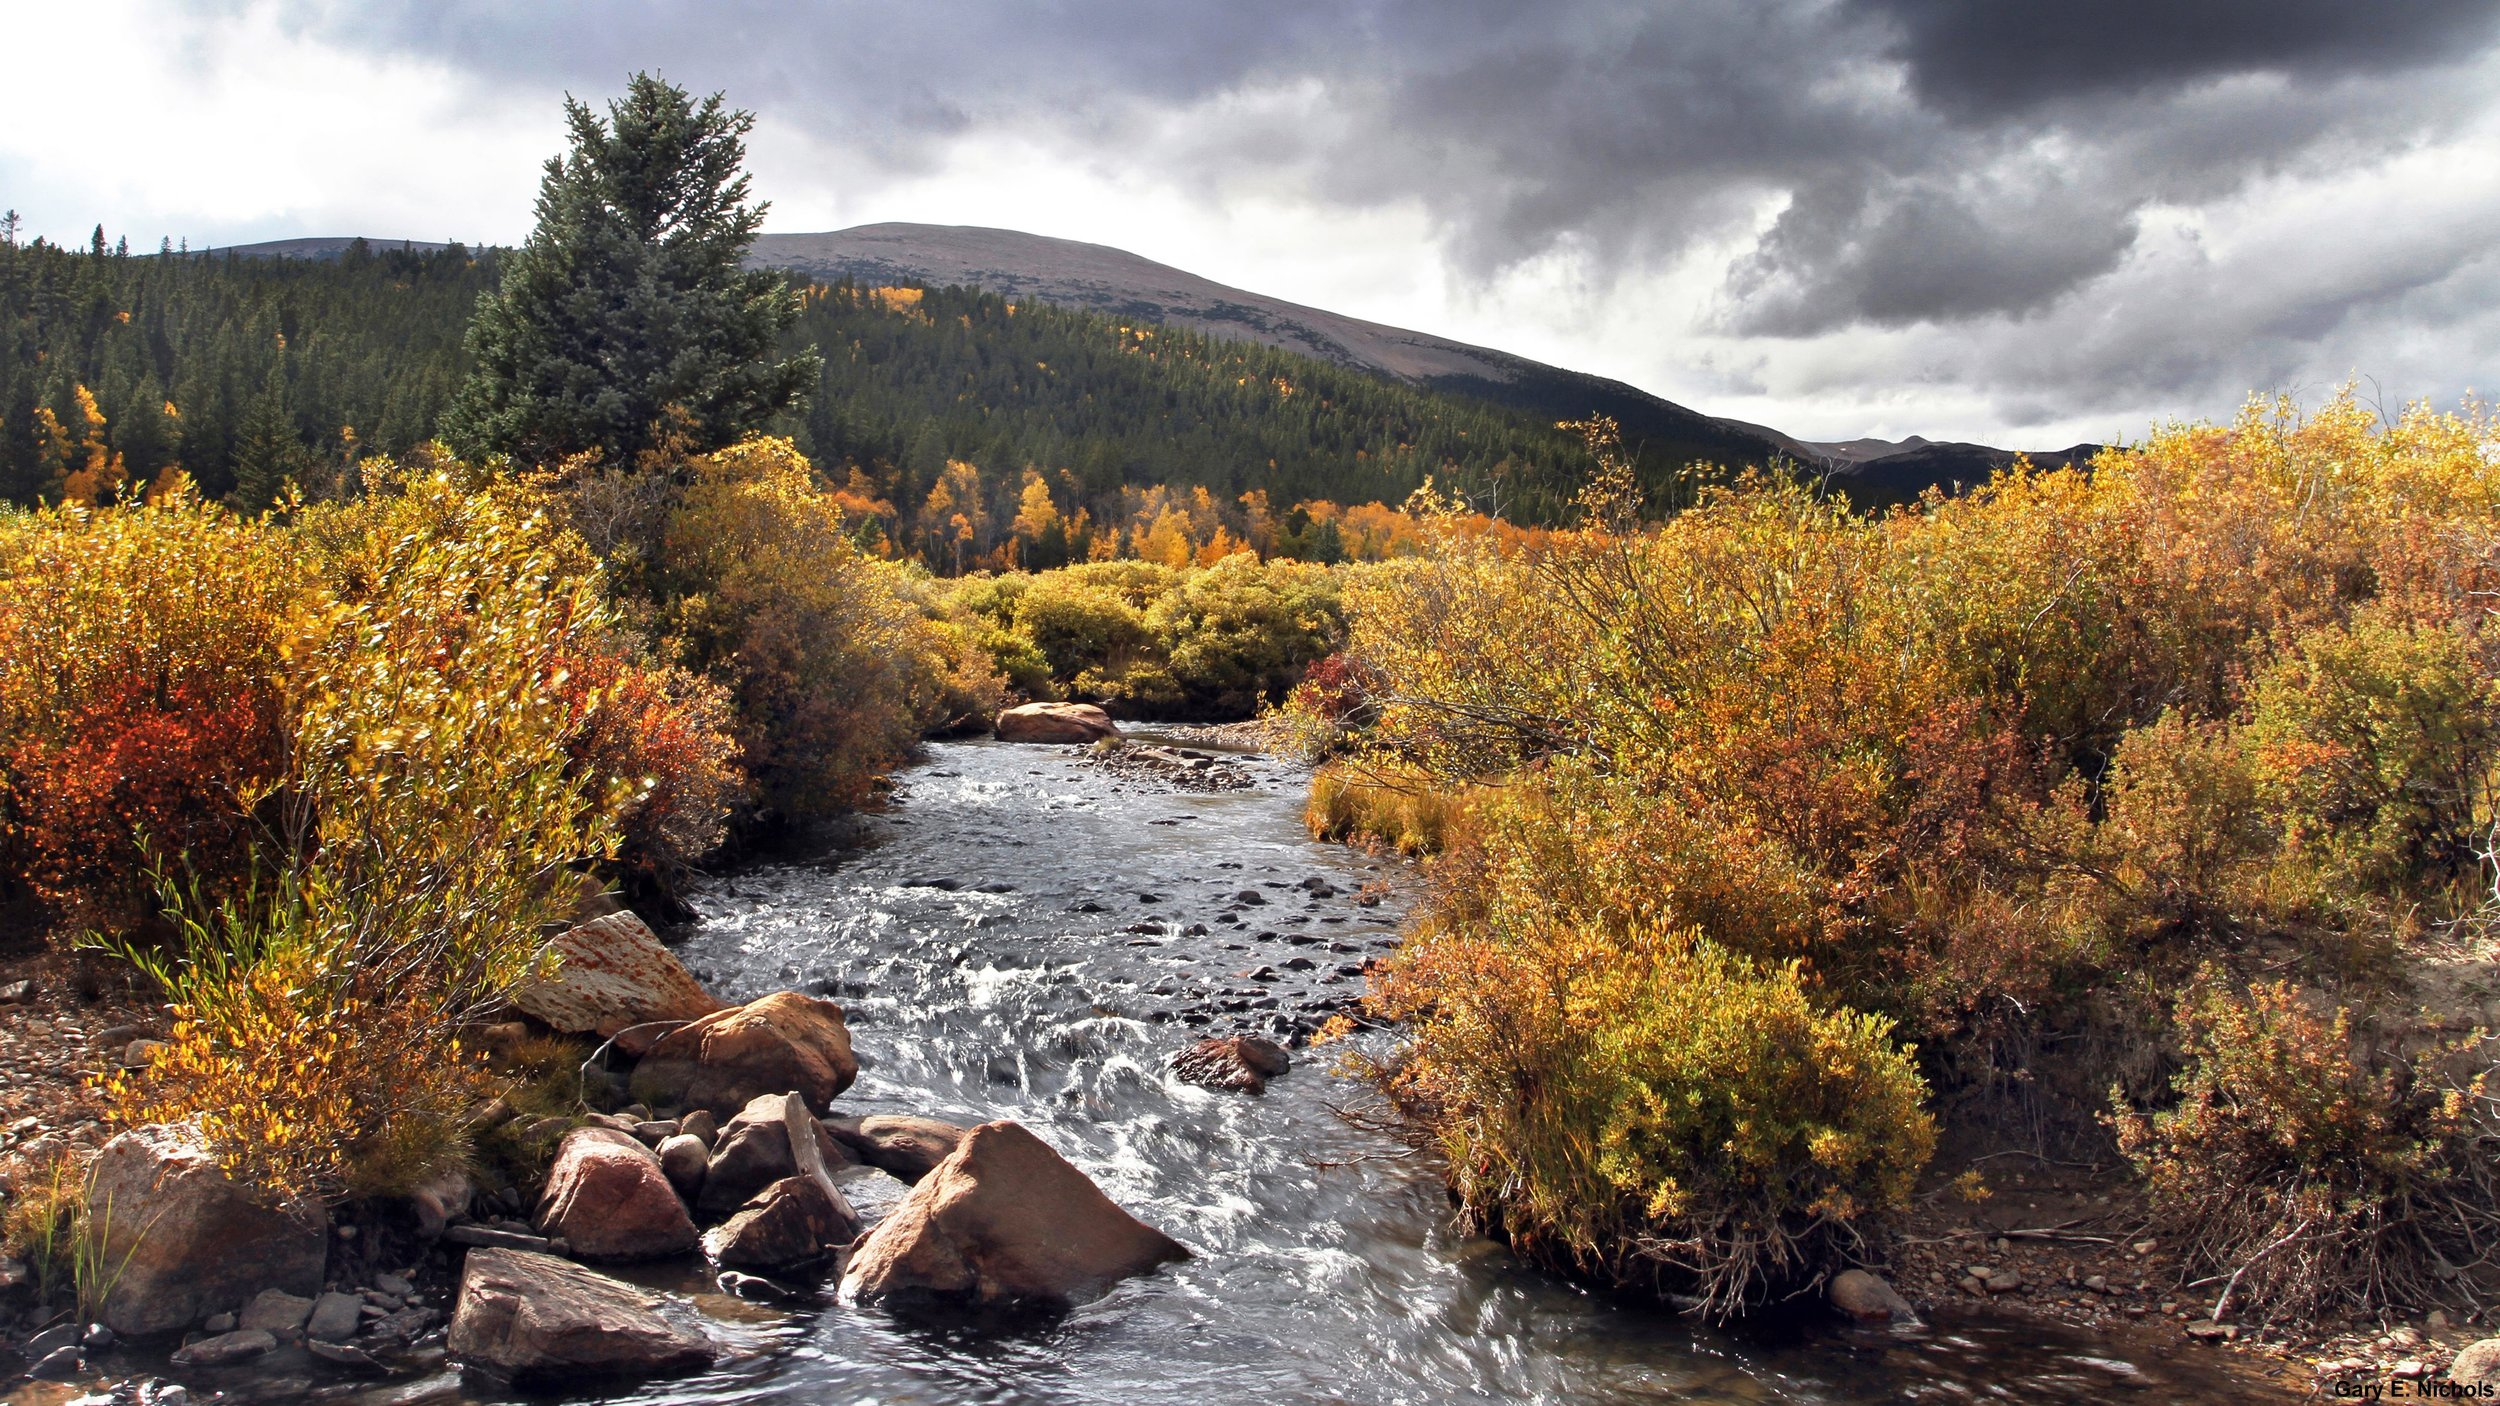 - Known as the Trout Capital of Colorado, Park County is a great place to reel in some fish with a side of beautiful fall views. Photo by: Gary E. Nichols